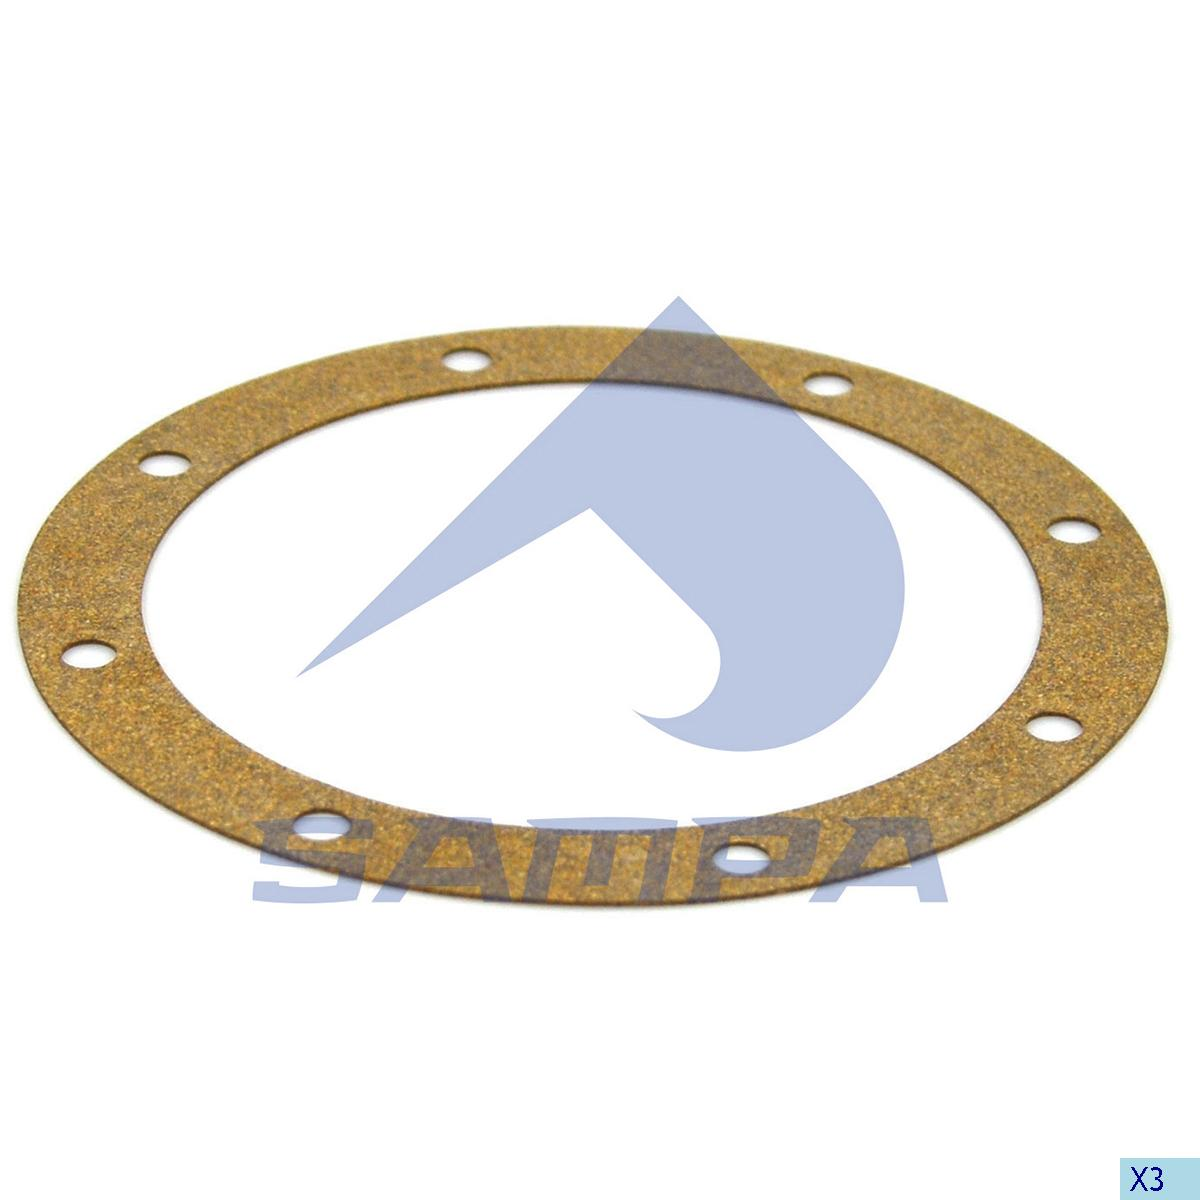 Gasket, Bogie Suspension, Scania, Suspension